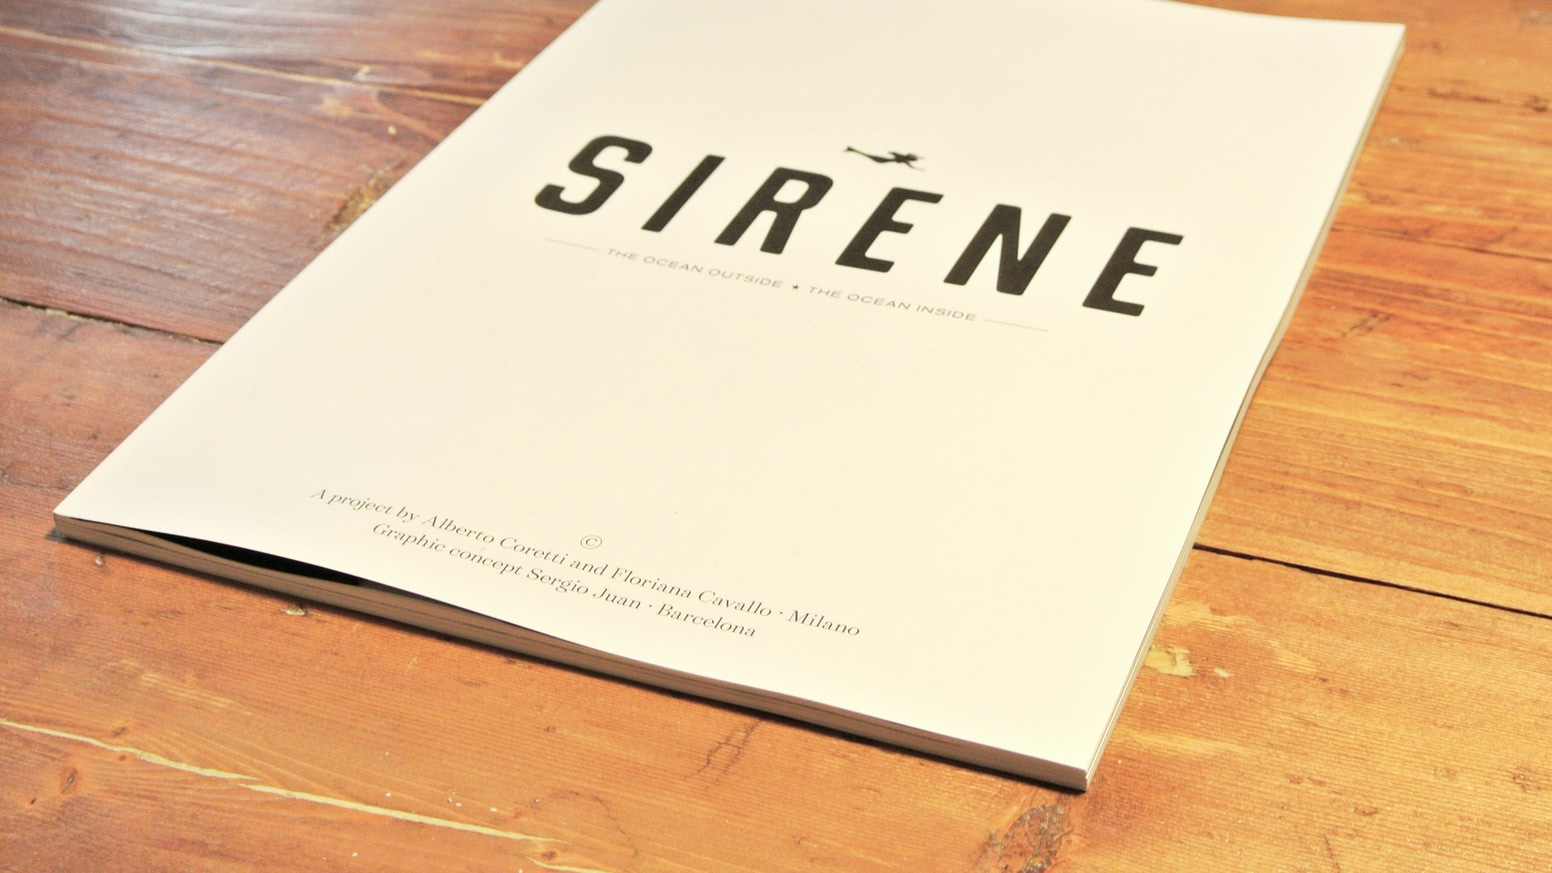 Help publish SIRENE, a new magazine tailored for those who feel close to the sea even when they are far away from it